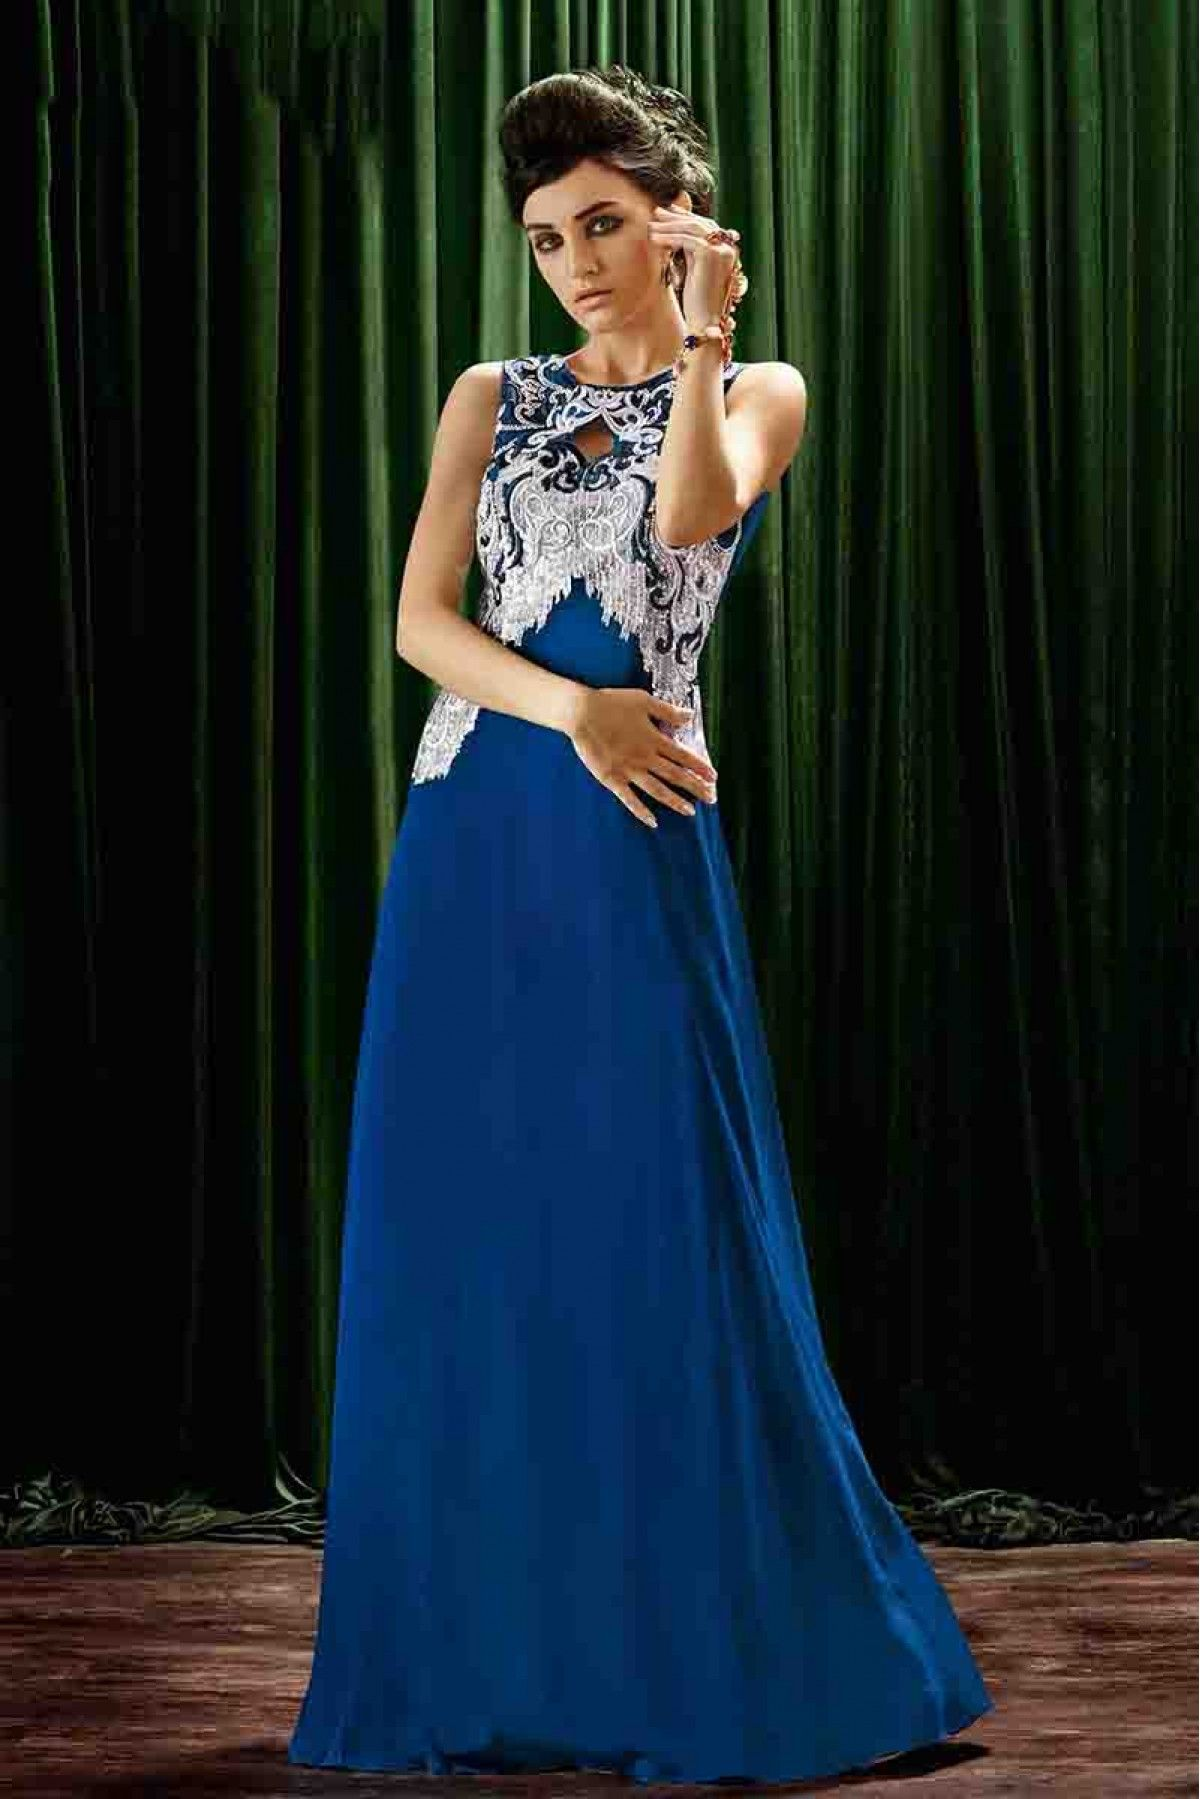 Crepe Designer Party Wear Gown in Blue Colour | Party wear, Blue ...